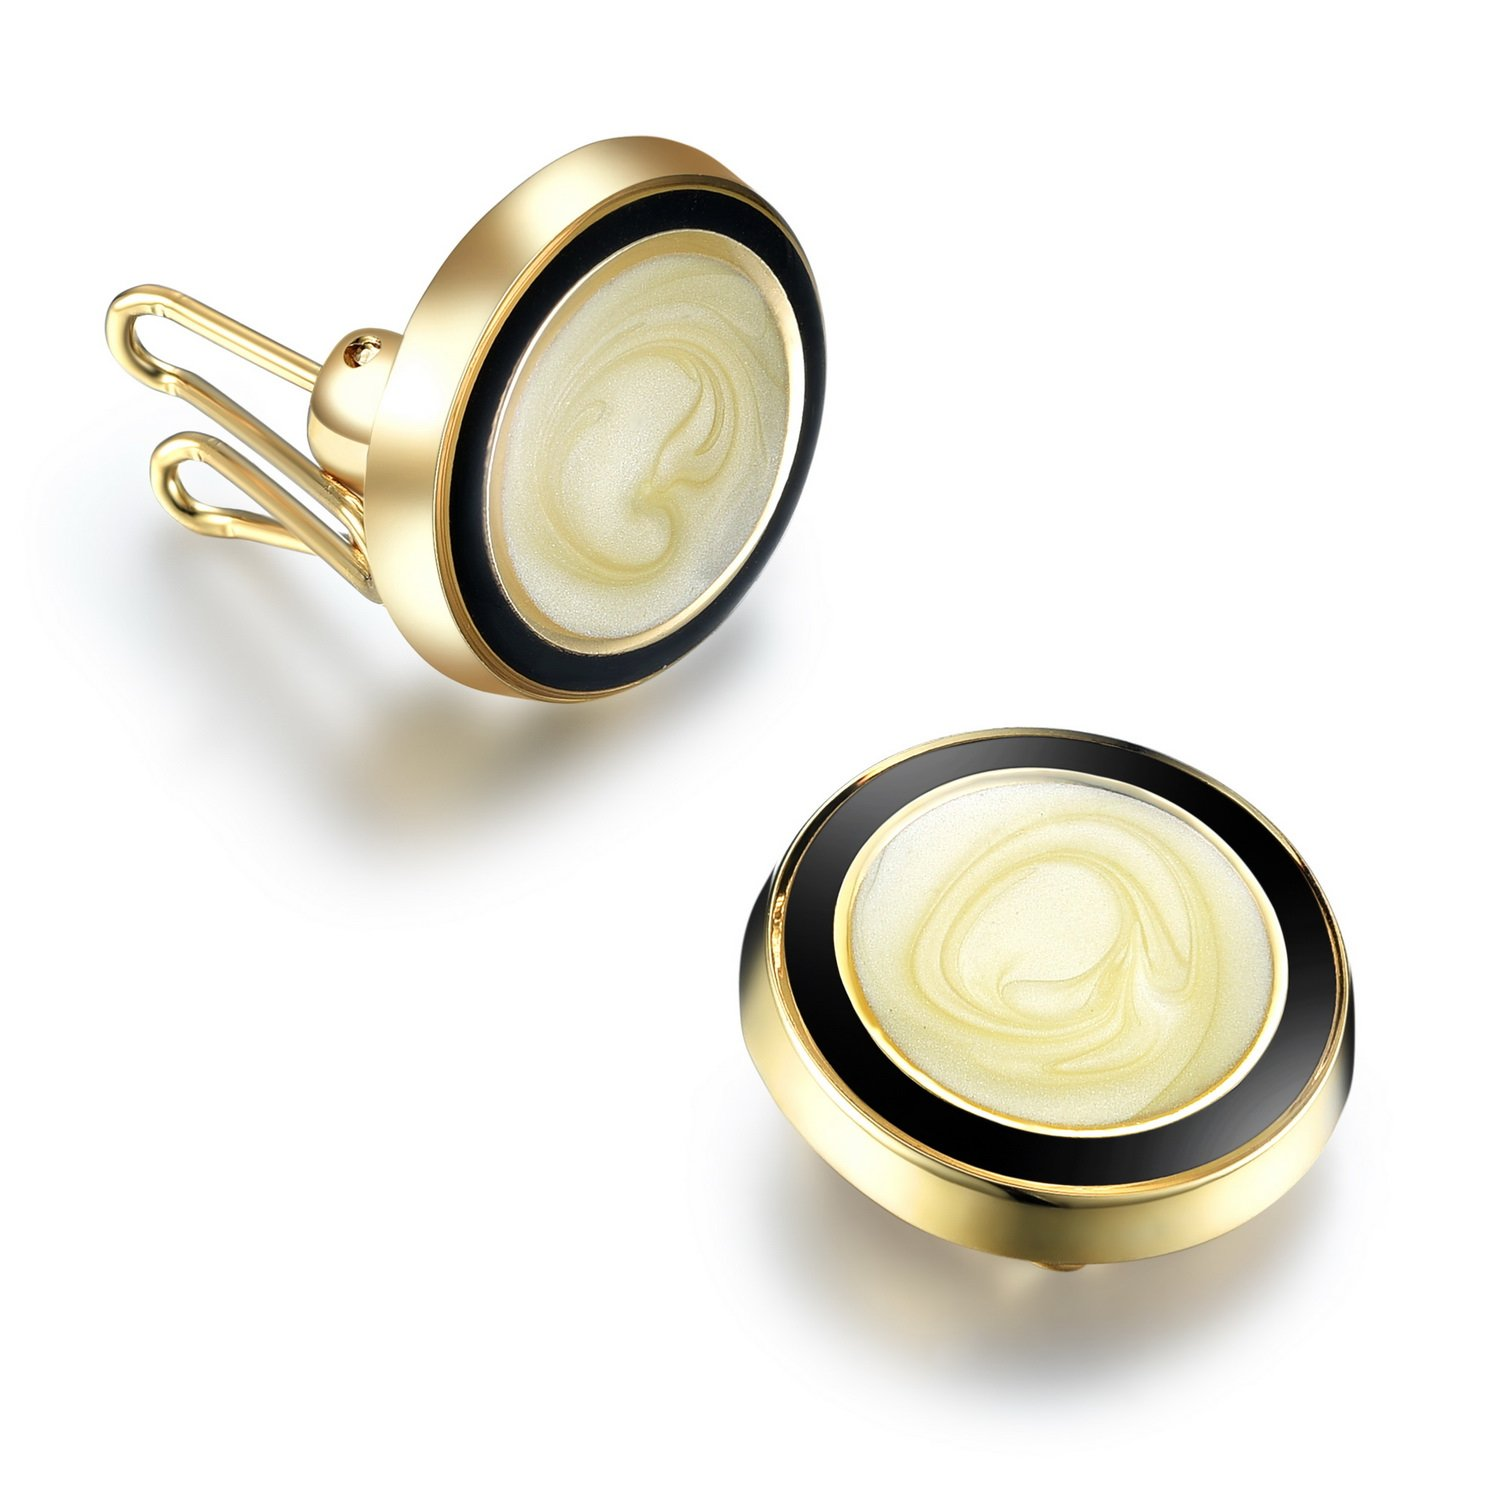 Gold Swirl Button Covers - Cuff Link Alternative for Shirts, Cuffs, Collars and Jackets (G-11 US)